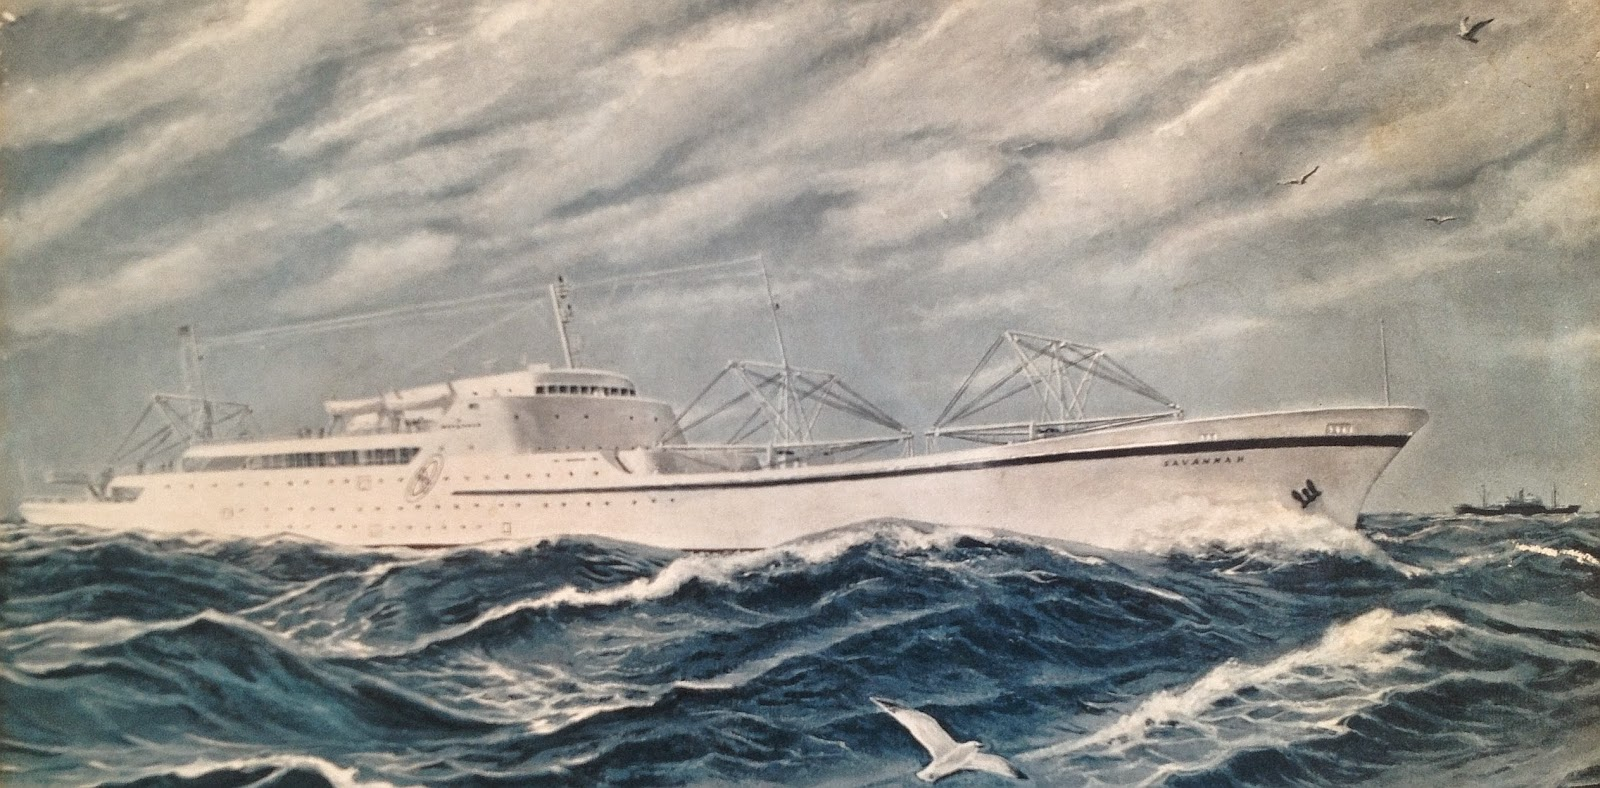 Atomic Power Review: BBC News On NS SAVANNAH